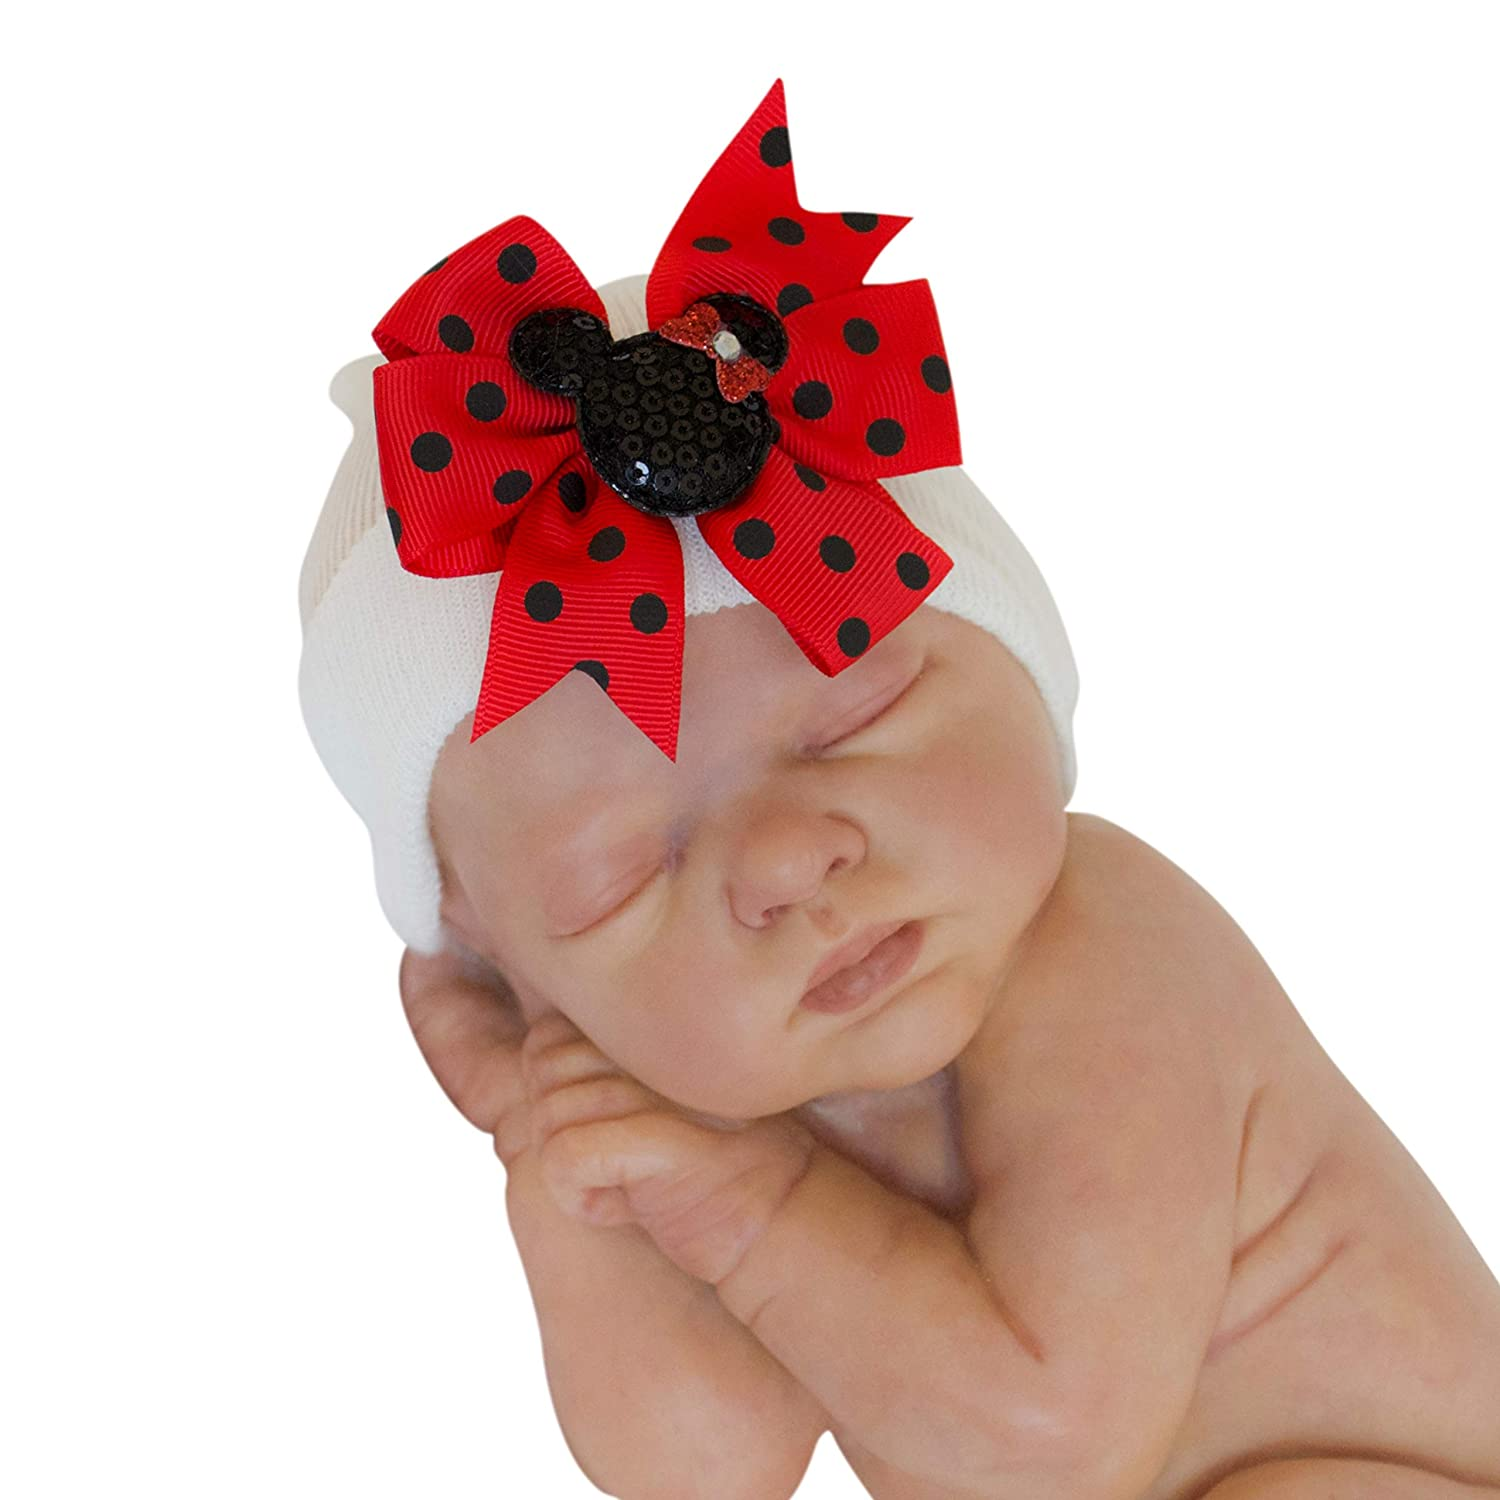 Infant Hat with Bows Girl Baby Beanie Hats The Posh Contessa Baby Gifts for Newborn Girls